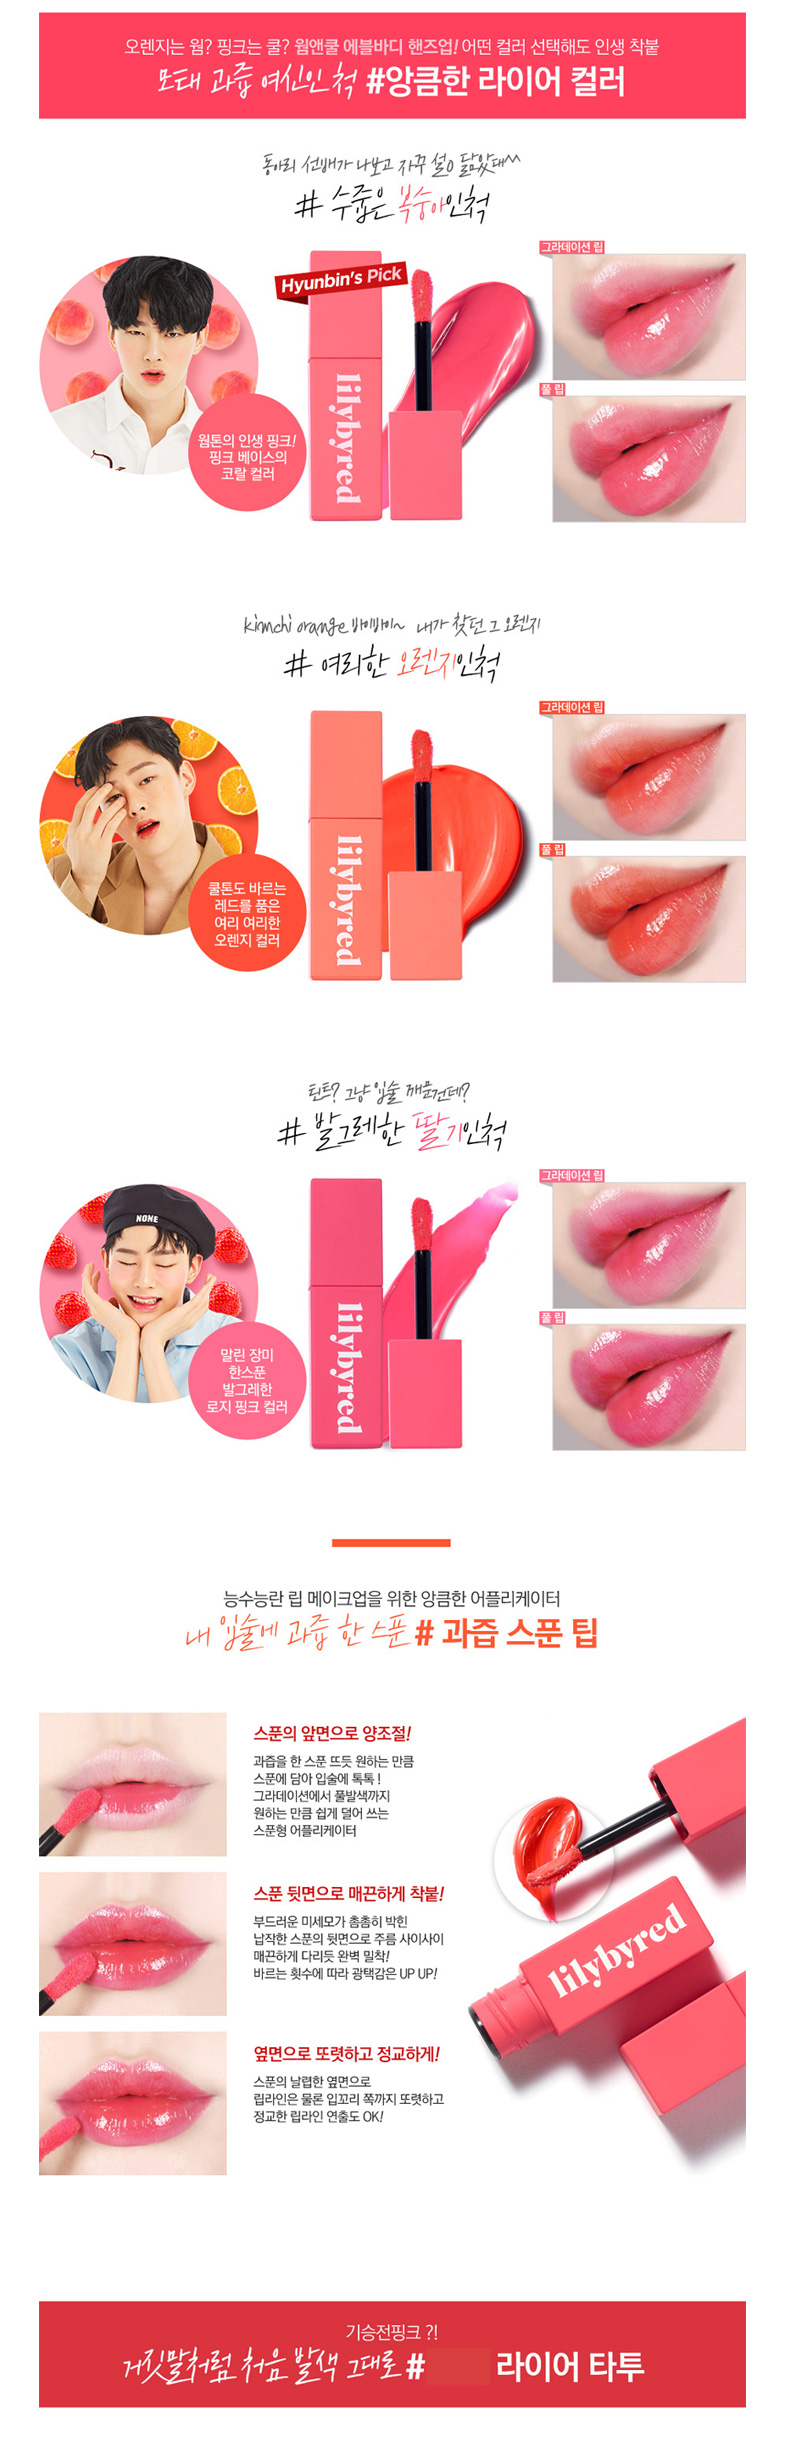 [OLIVEYOUNG] JBJ - Lilybyred Bloody Liar Coating Tint 4g